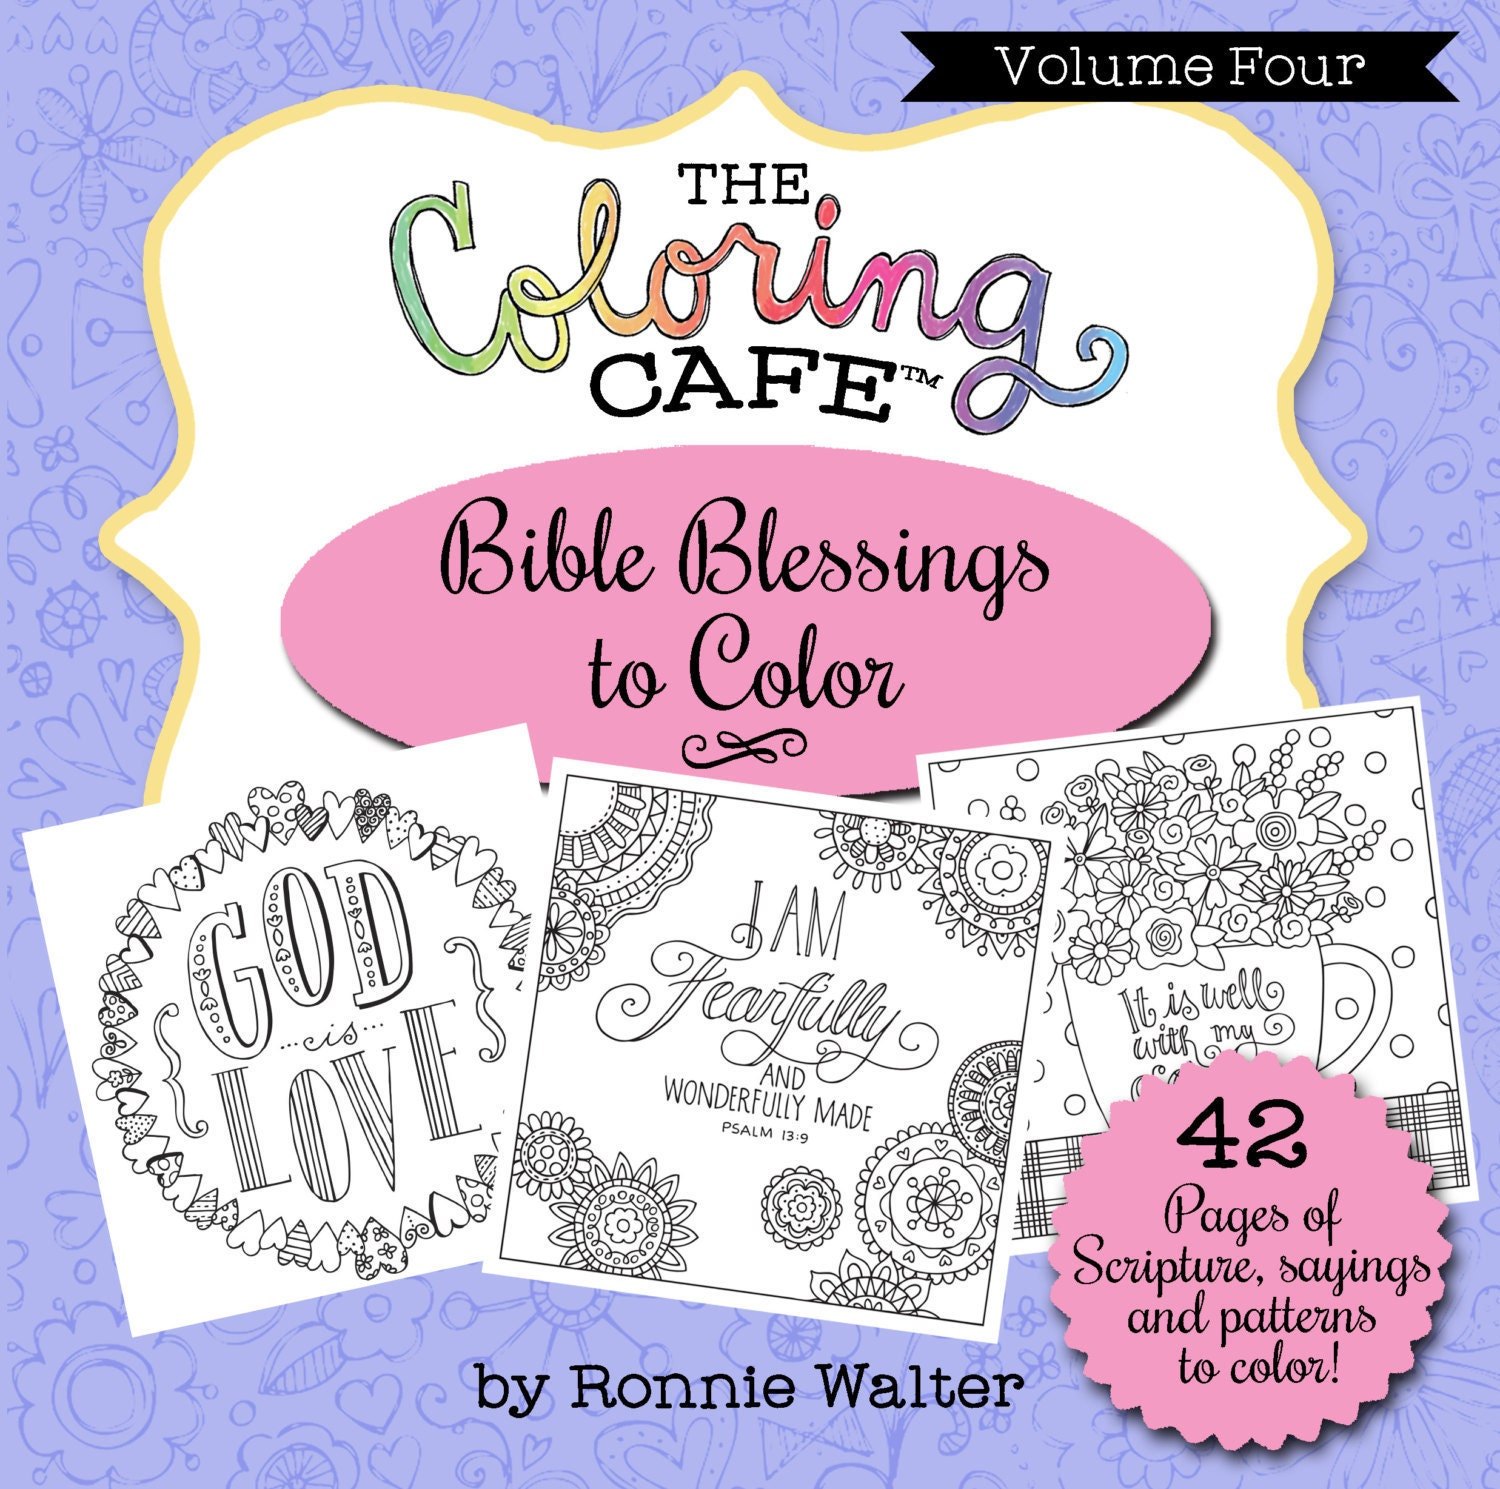 The Coloring CafeTM Bible Blessings To Color Scripture